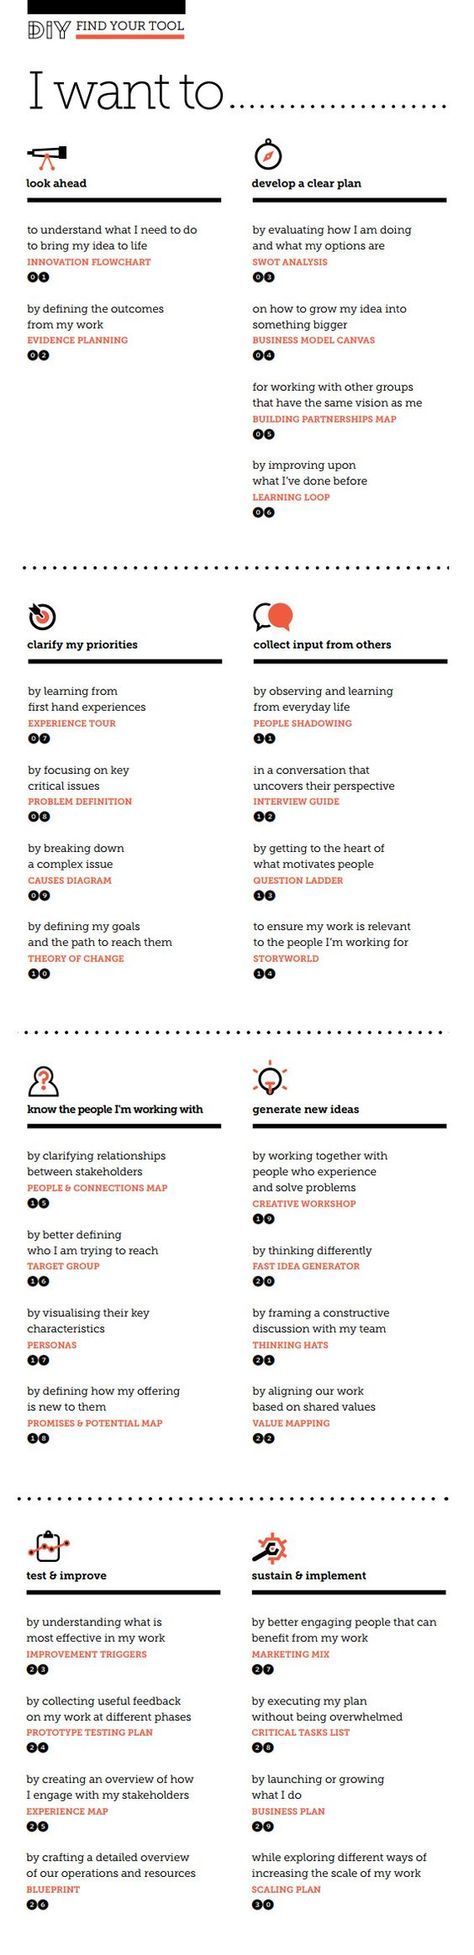 114 best business strategy images on pinterest entrepreneurship 114 best business strategy images on pinterest entrepreneurship business planning and strategic planning malvernweather Gallery